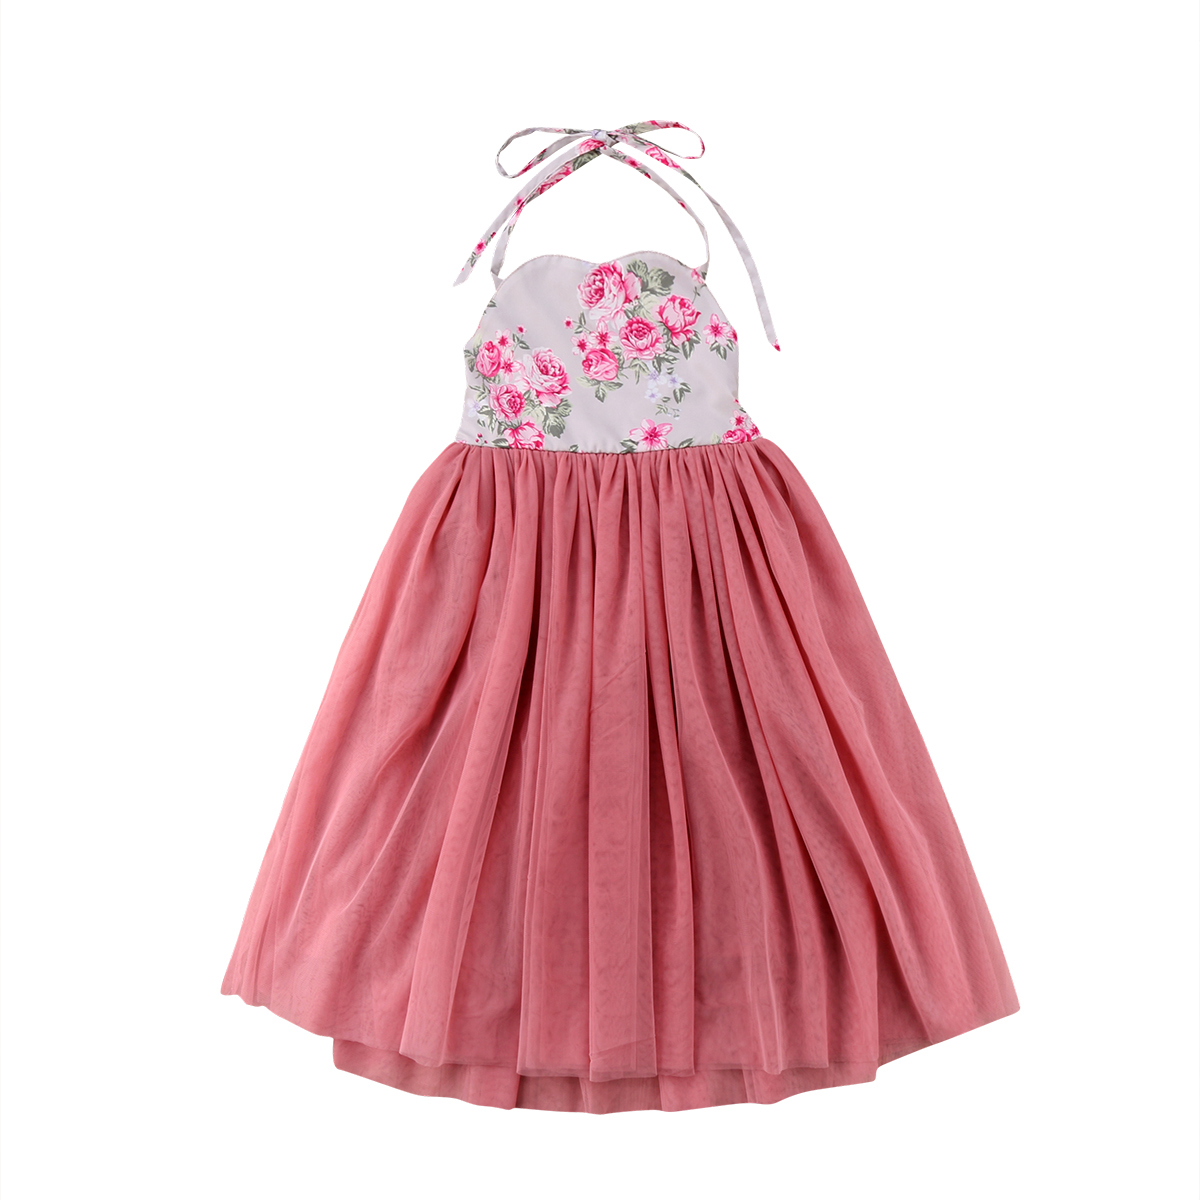 Princess Kids Baby Girls Dress Lace Floral Party Tiered Flower Ruffles Summer Sundress Dresses Clothes Girl 1-7T teenage girl party dress children 2016 summer flower lace princess dress junior girls celebration prom gown dresses kids clothes